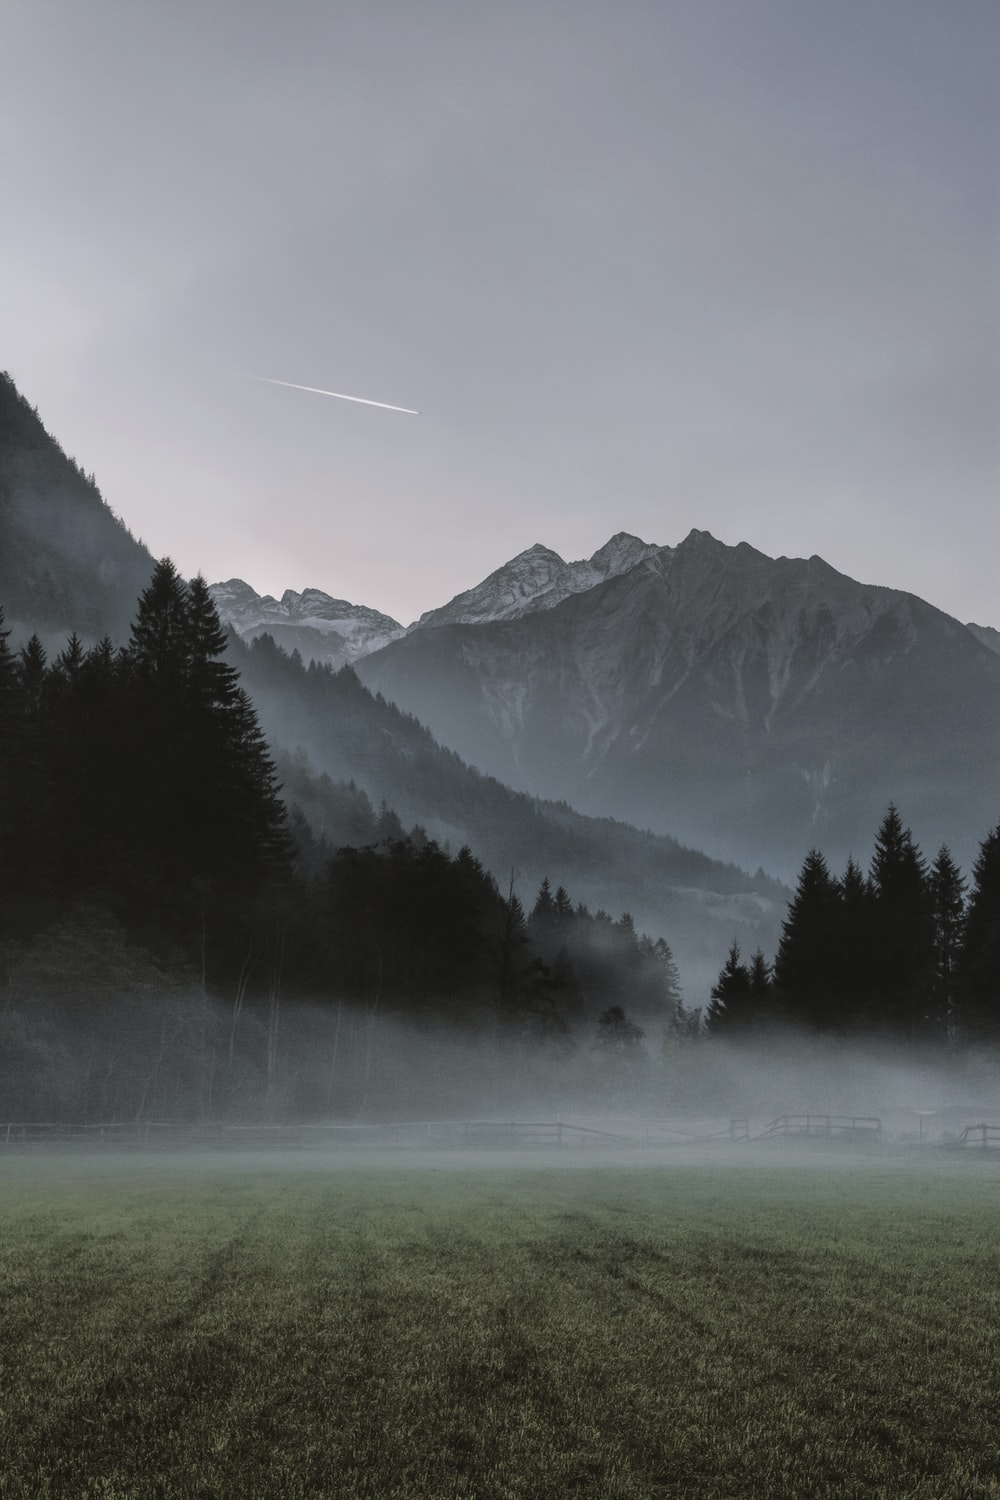 landscape photo of mountains covered by fogs and view of contrail